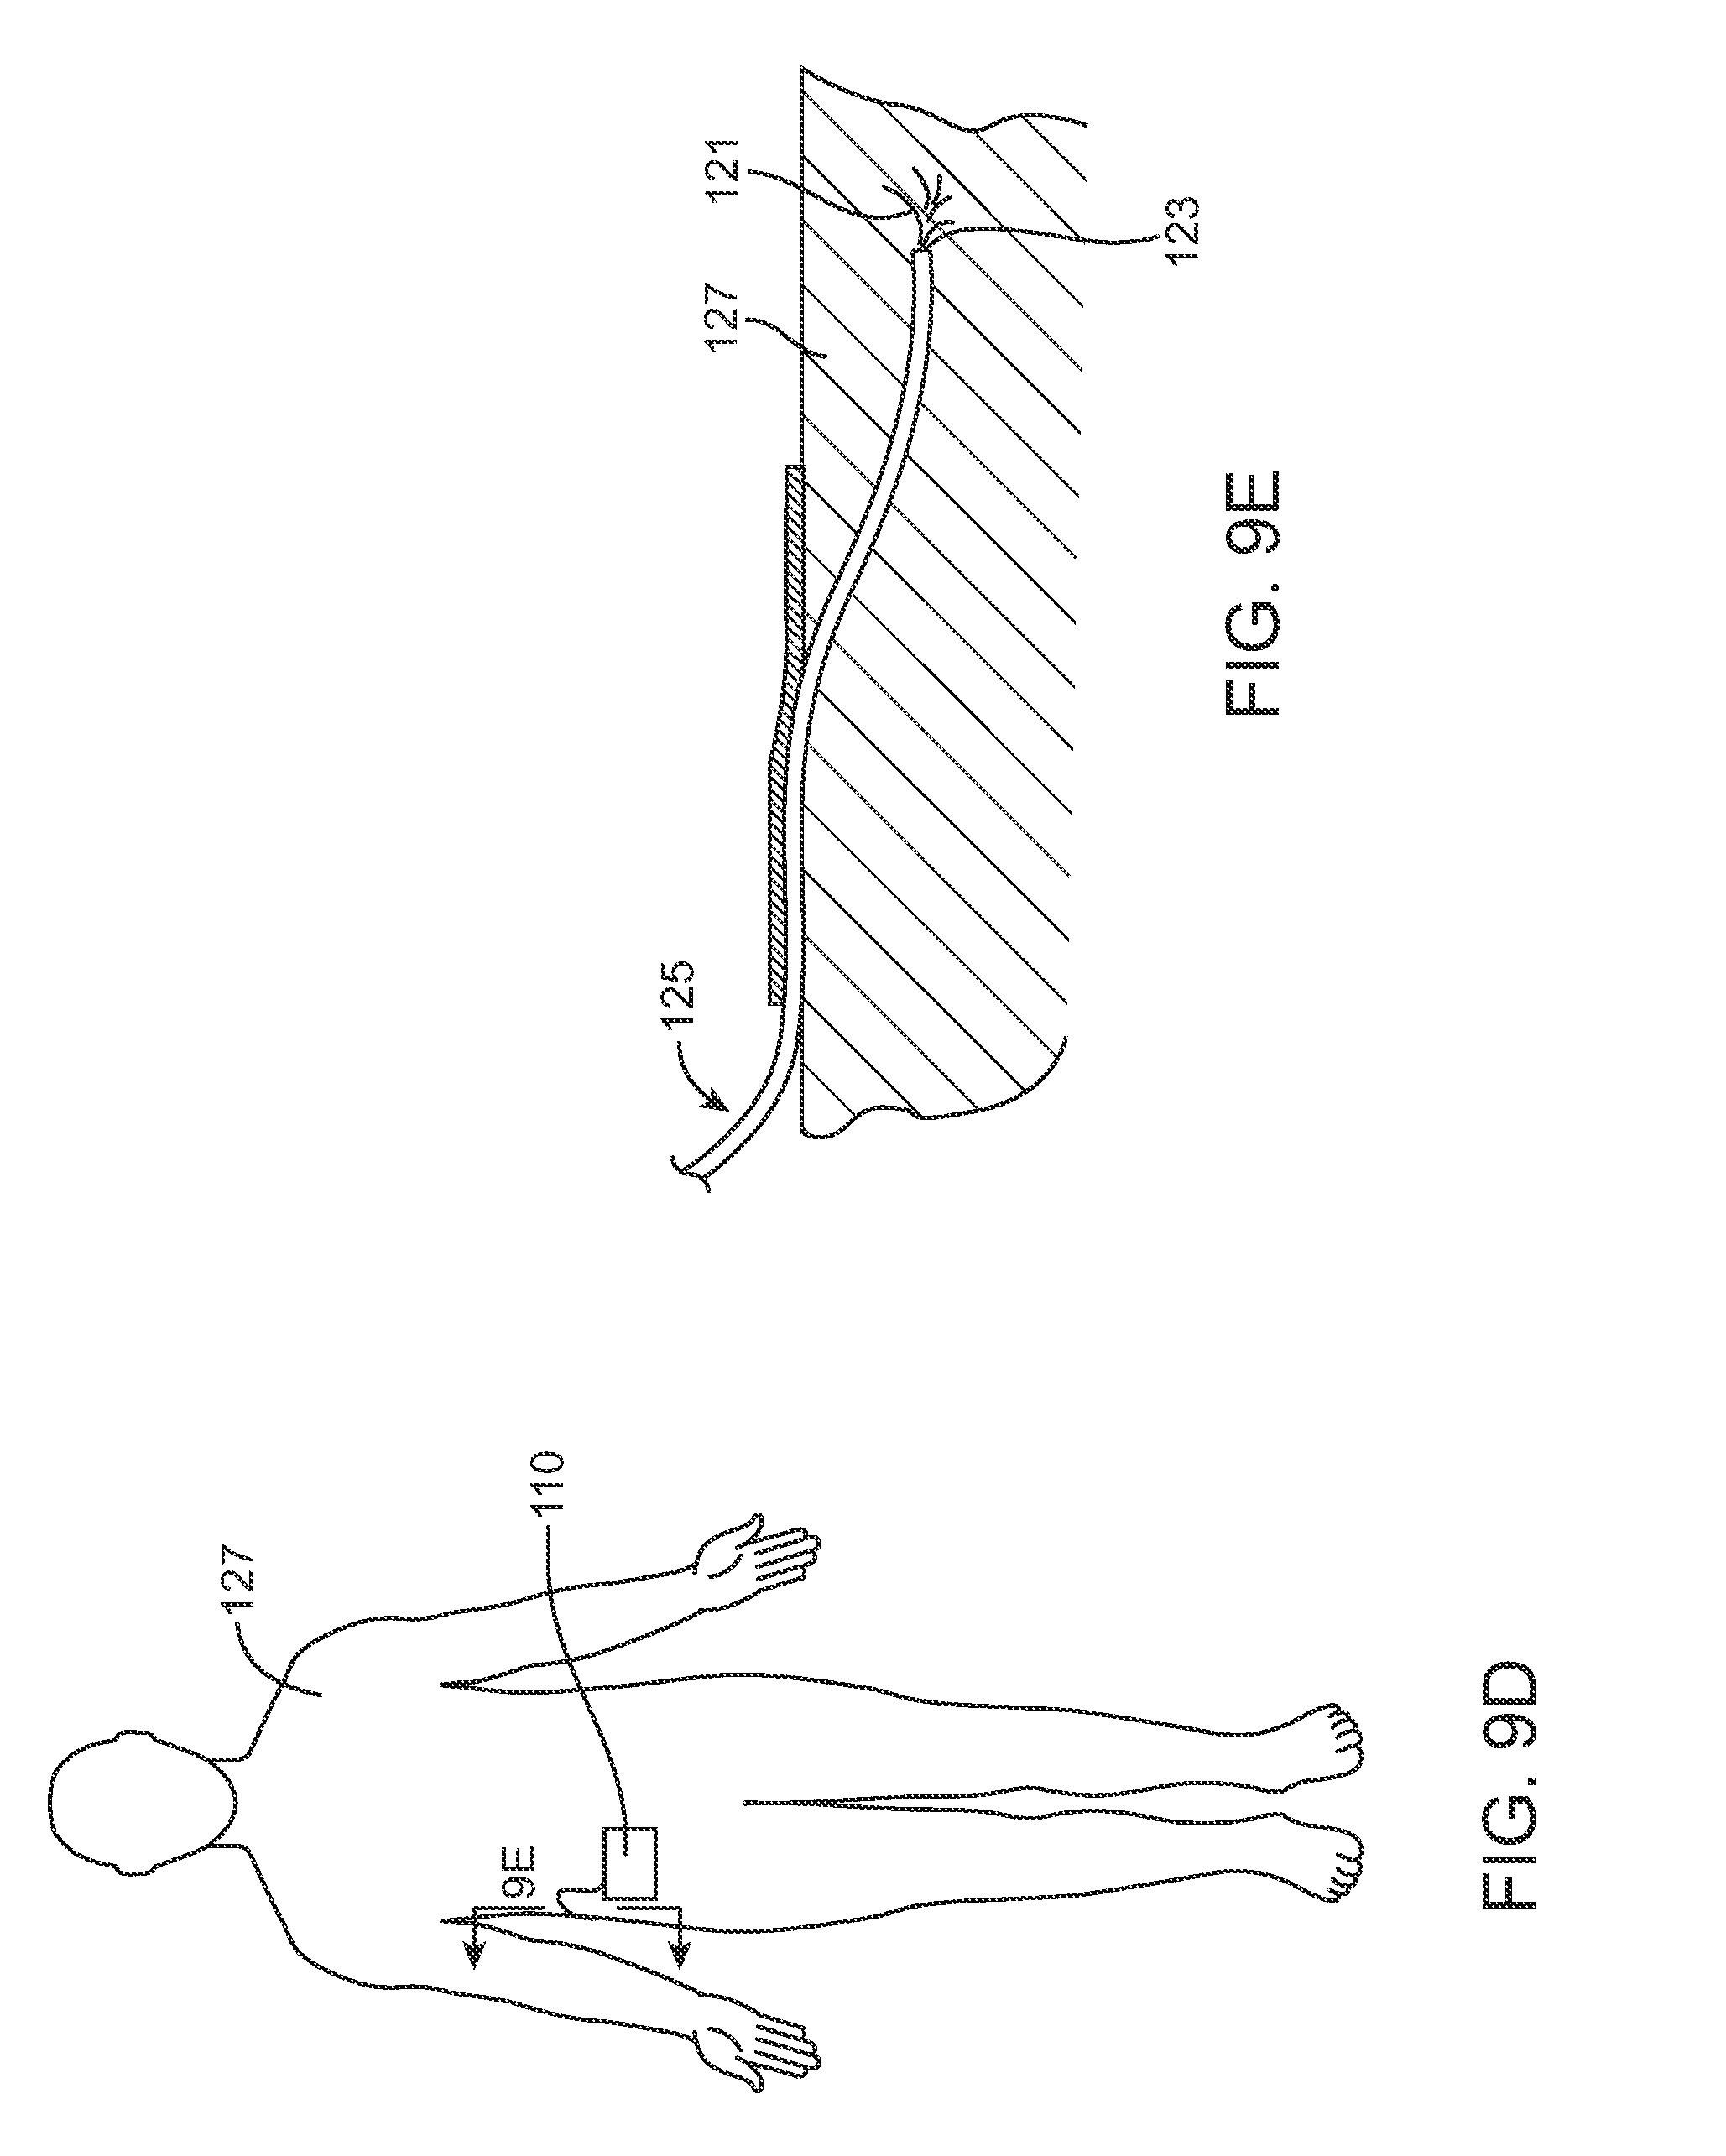 Us8758323b2 infusion pump system with disposable cartridge having pressure venting and pressure feedback patents